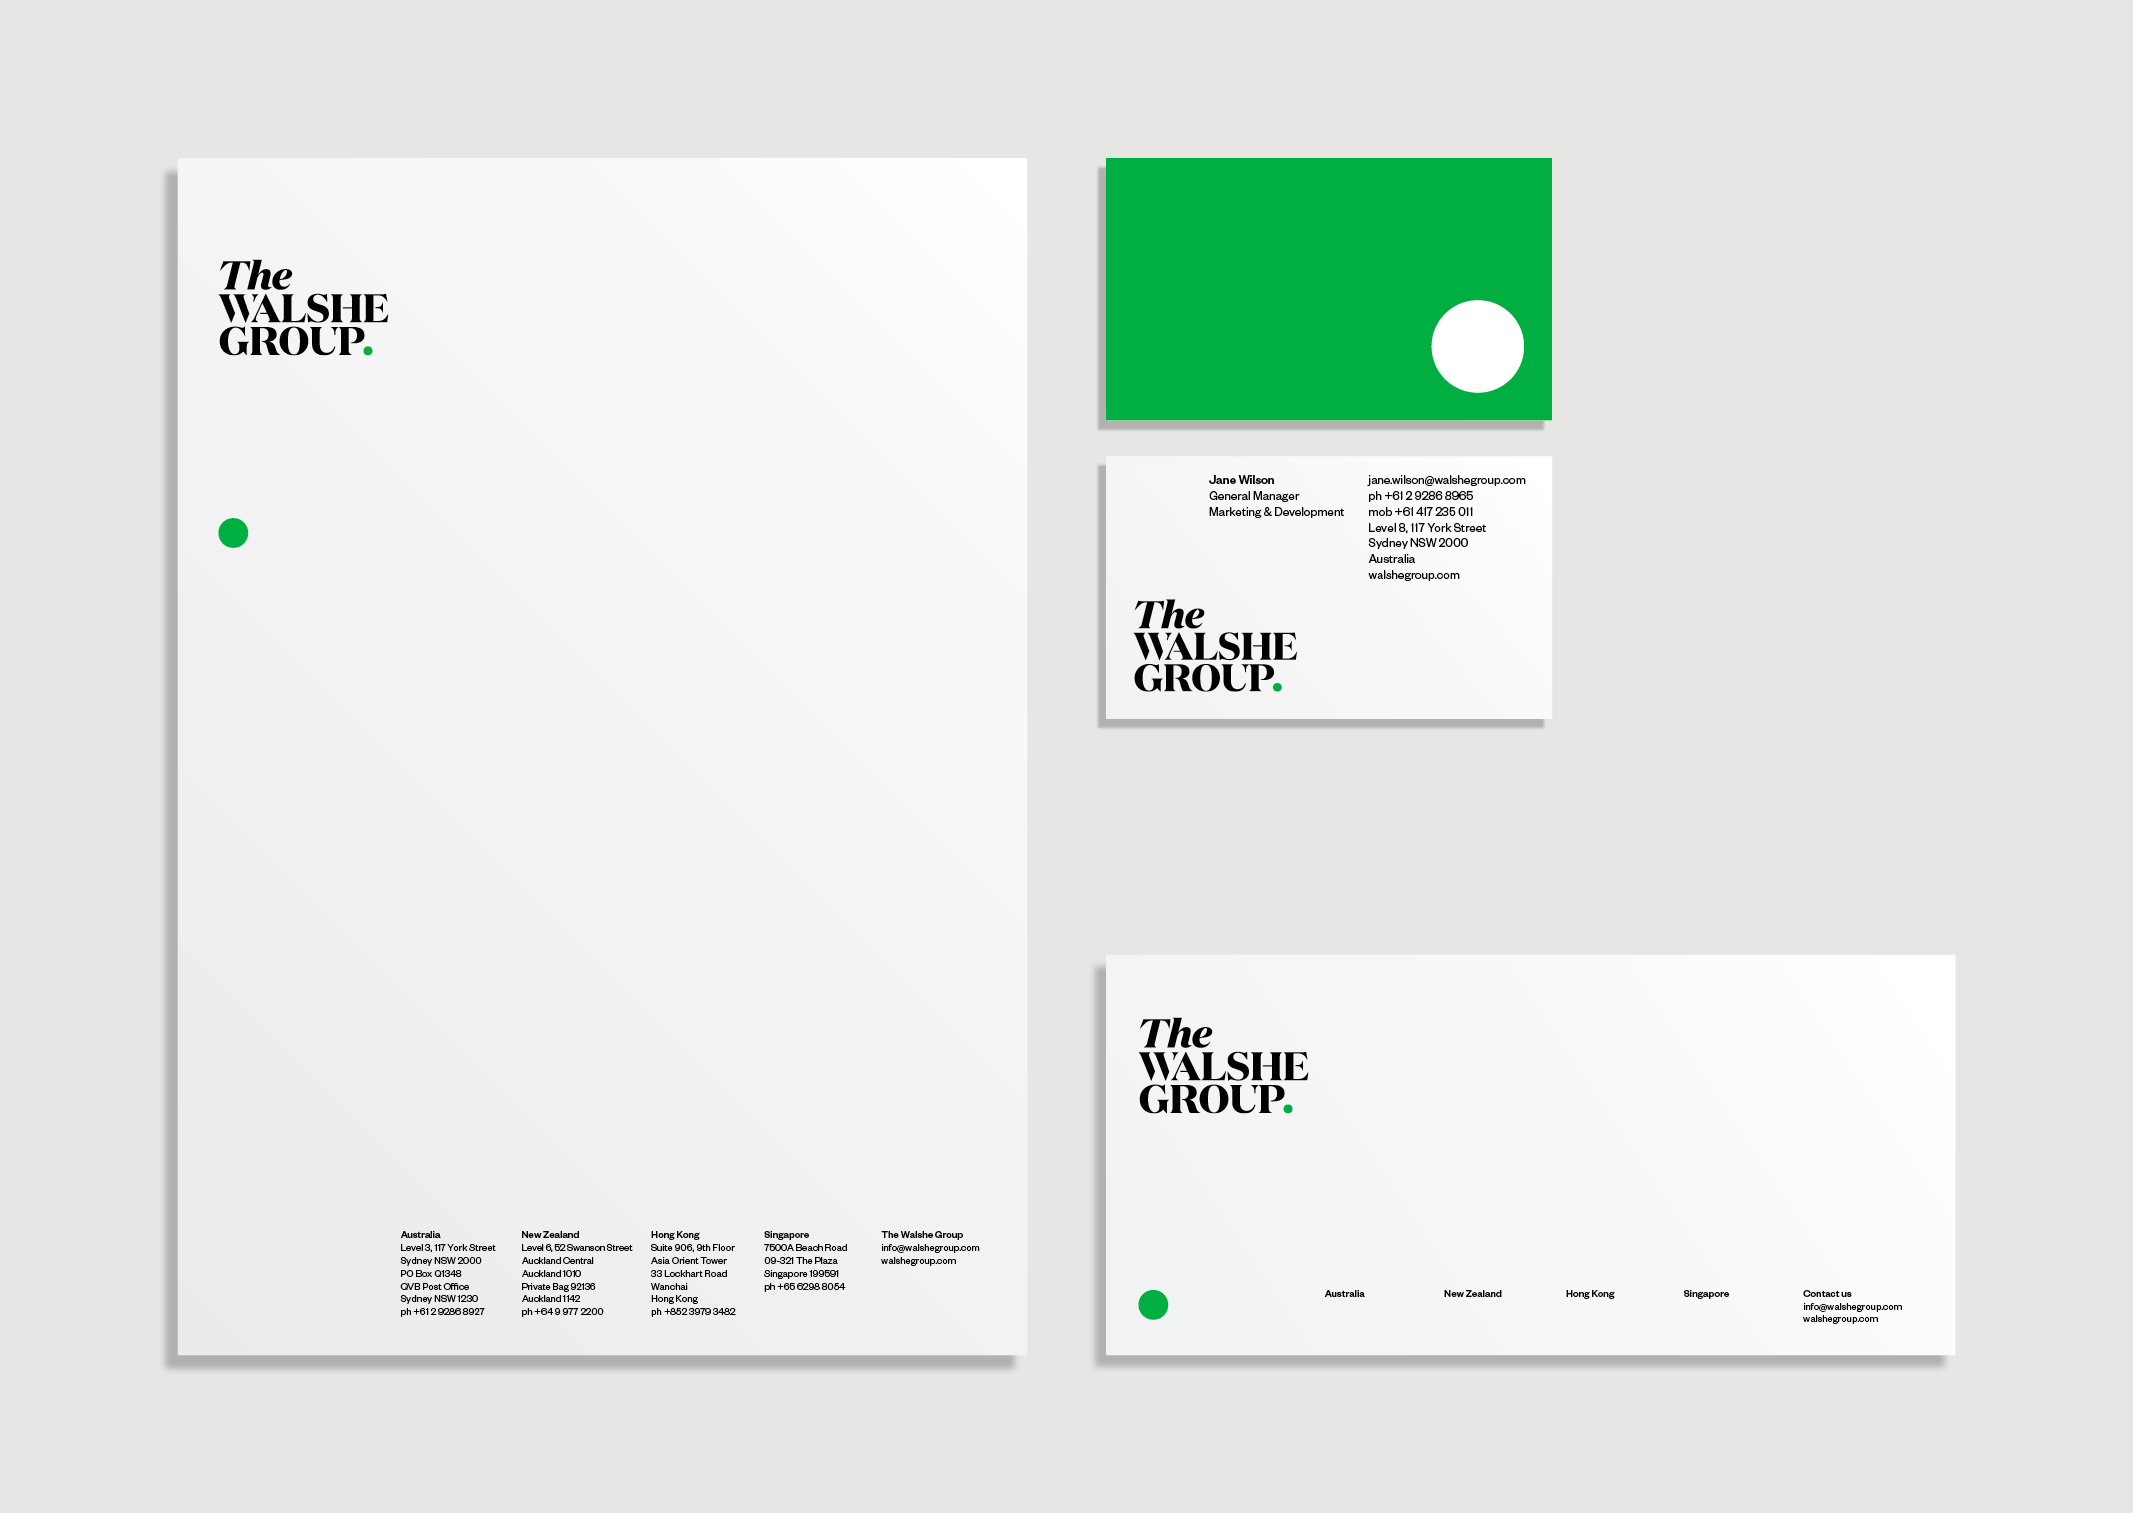 The Walshe Group Stationery – Business cards, letterhead with bright green reverse and white full stop